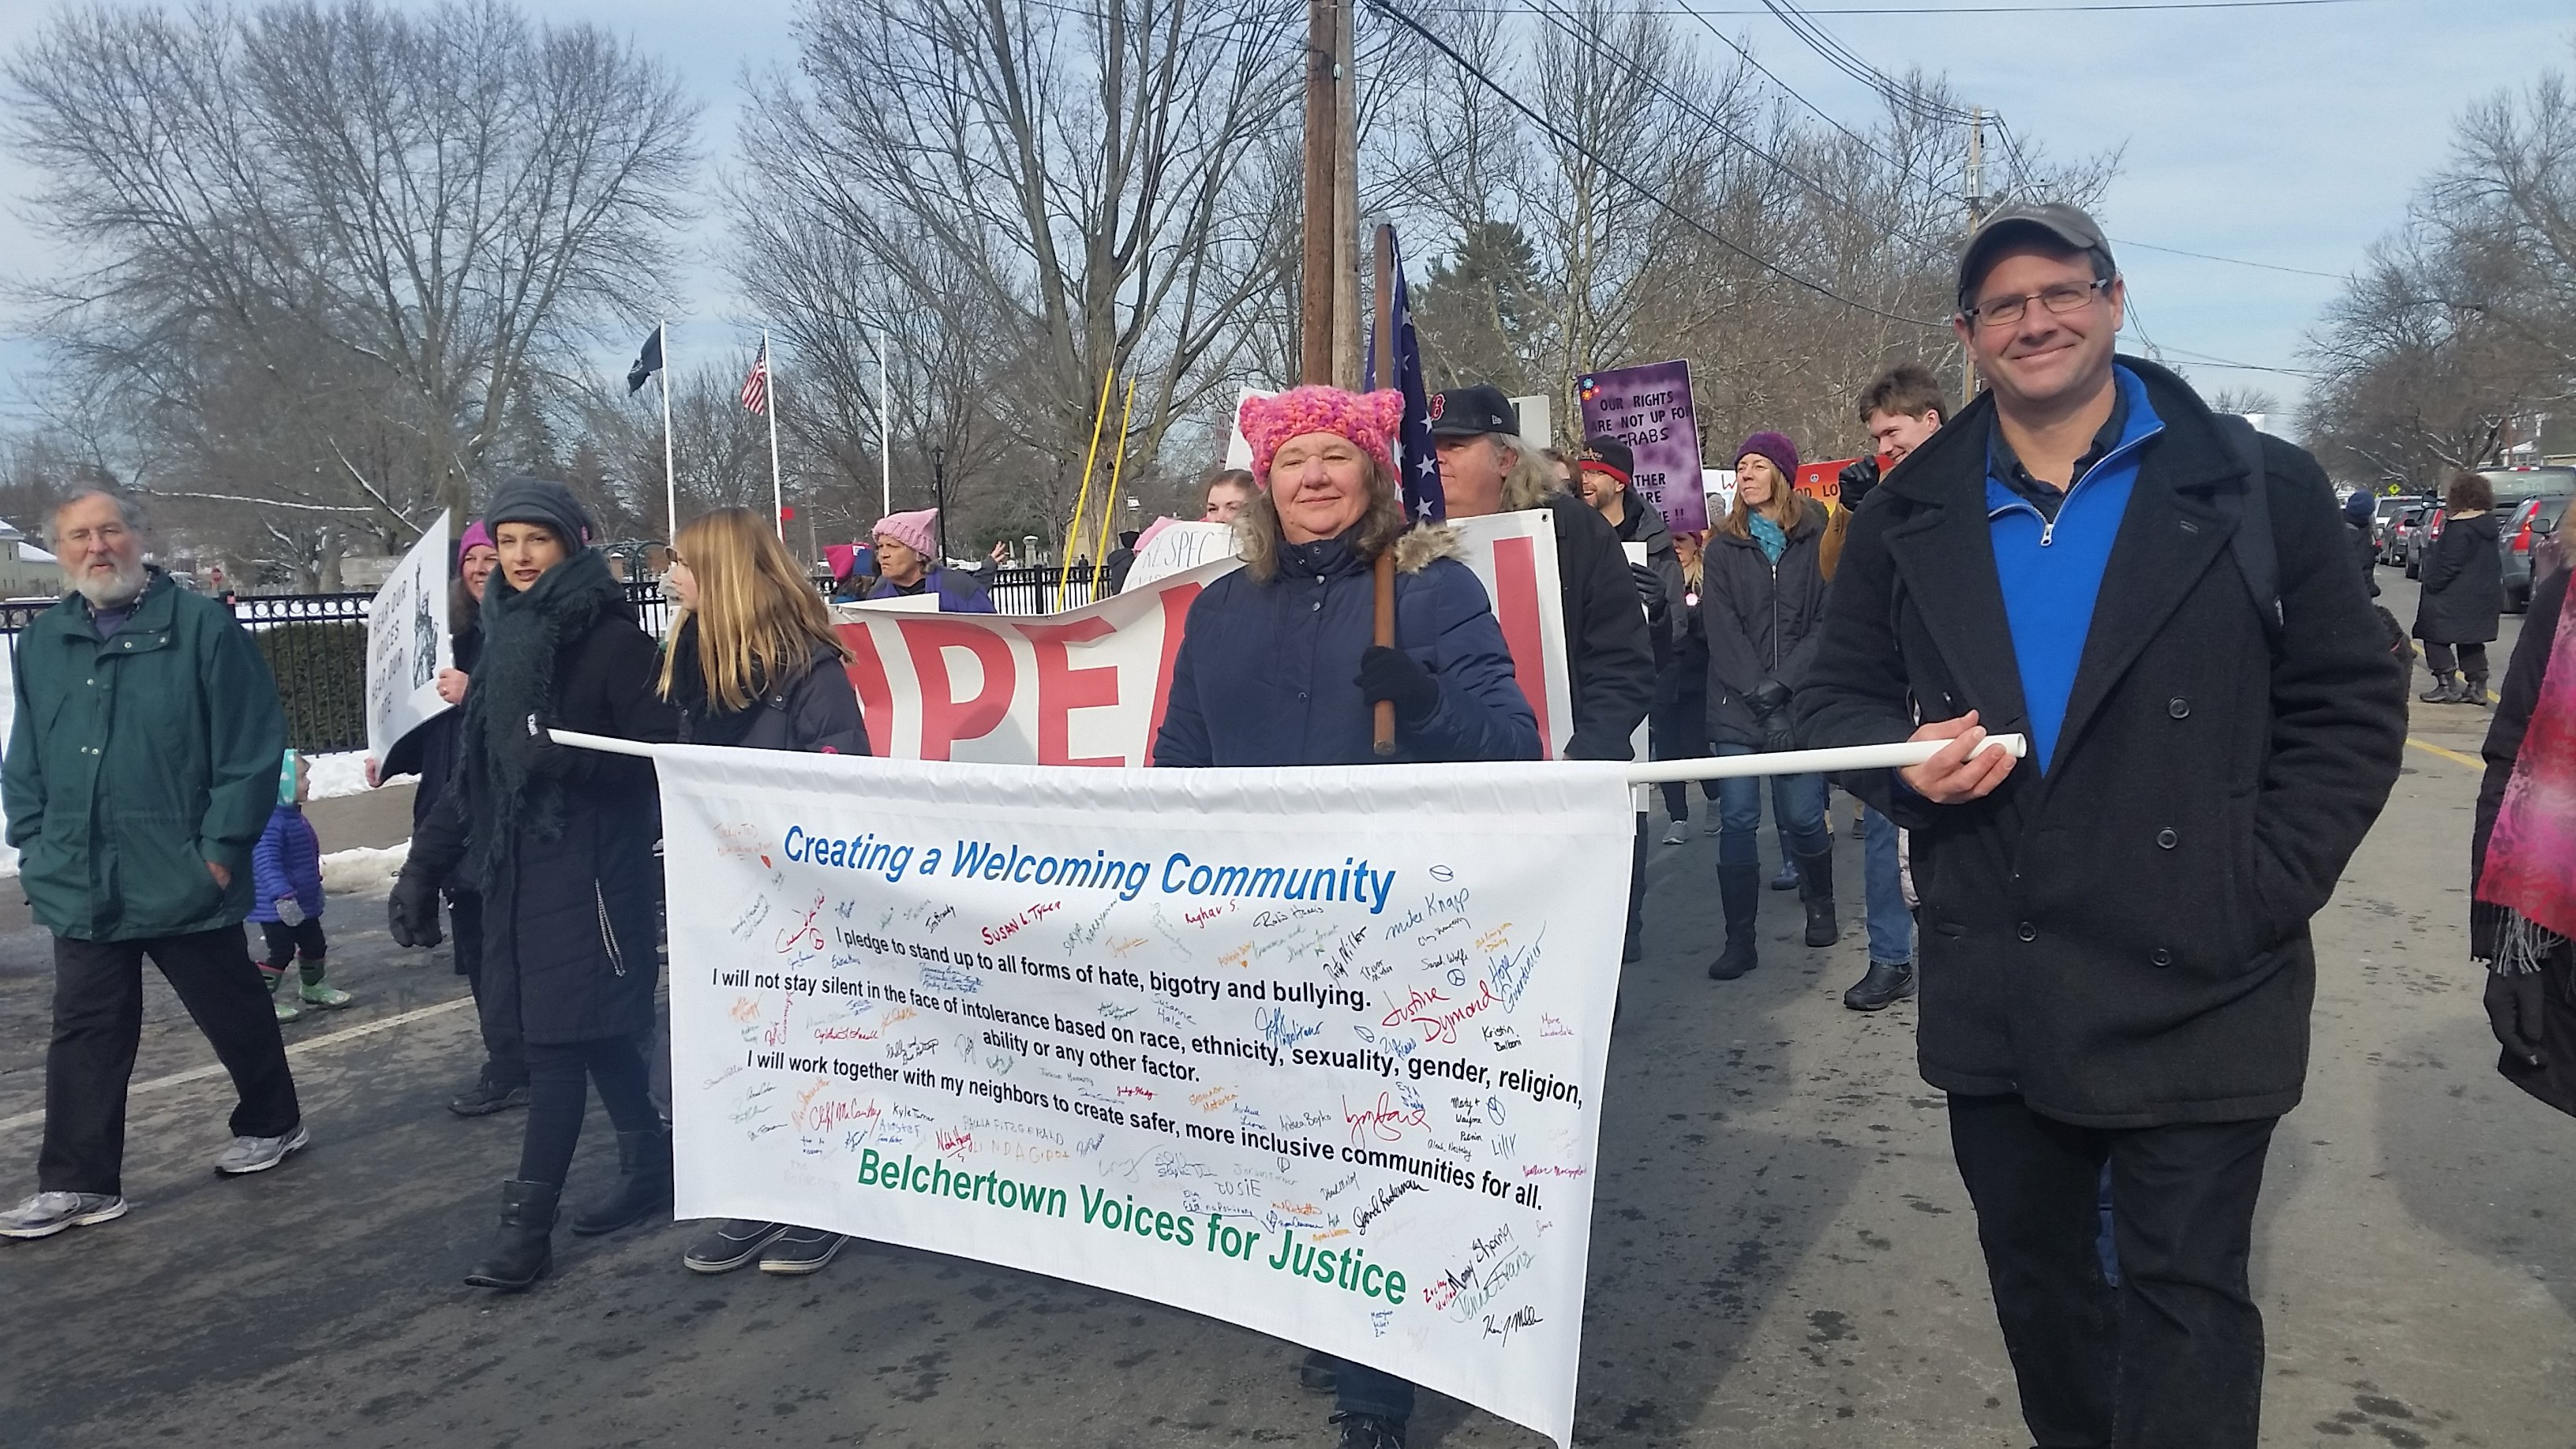 Belchertown Voices for Justice